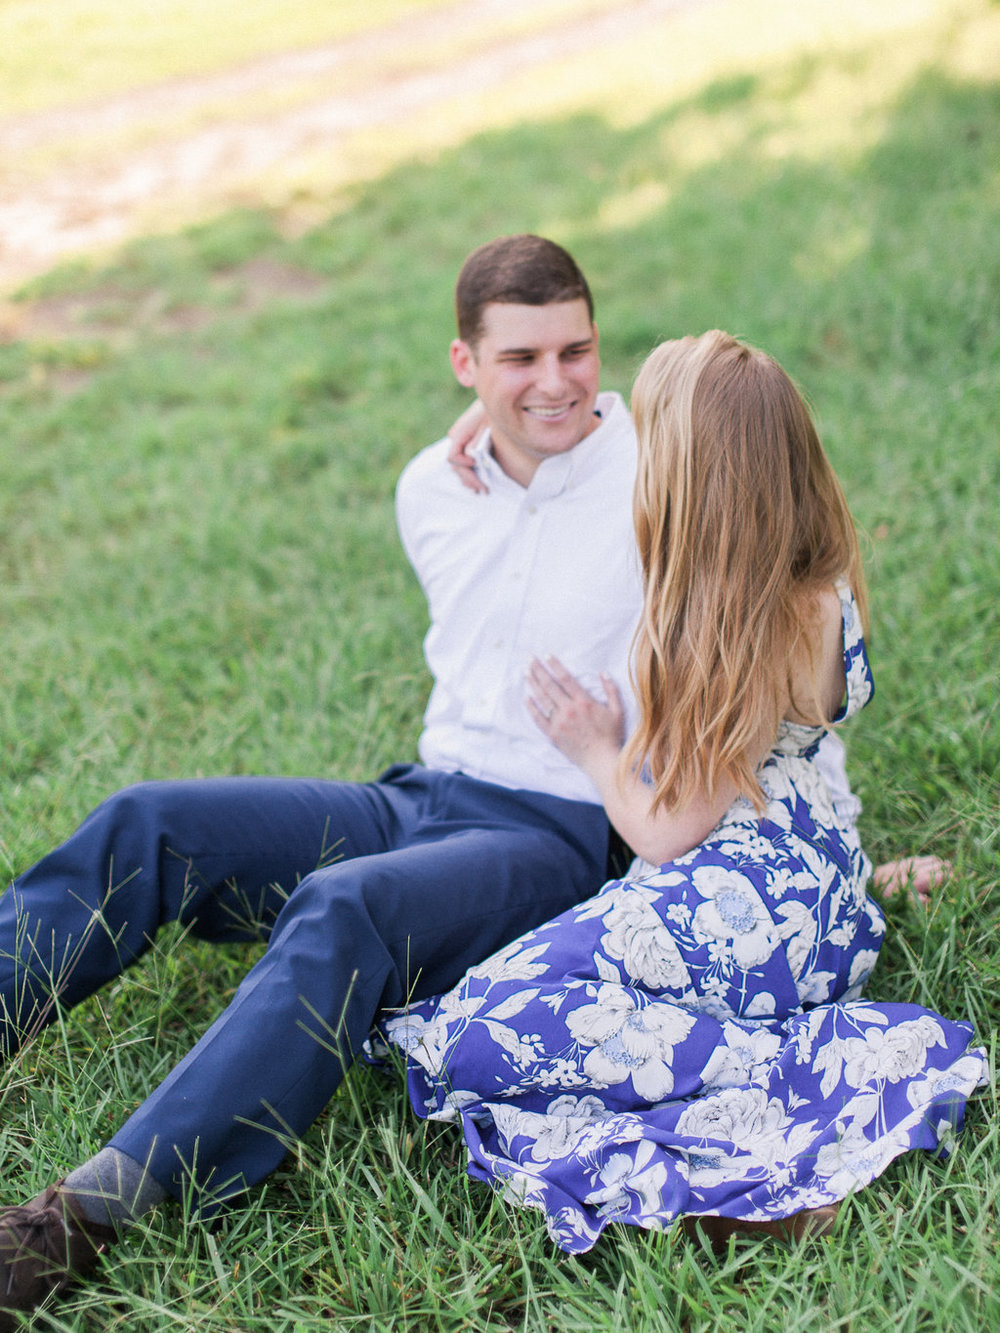 Woodstock-Engagement-Session-atlanta-wedding-photographer-hannah-forsberg-7.jpg